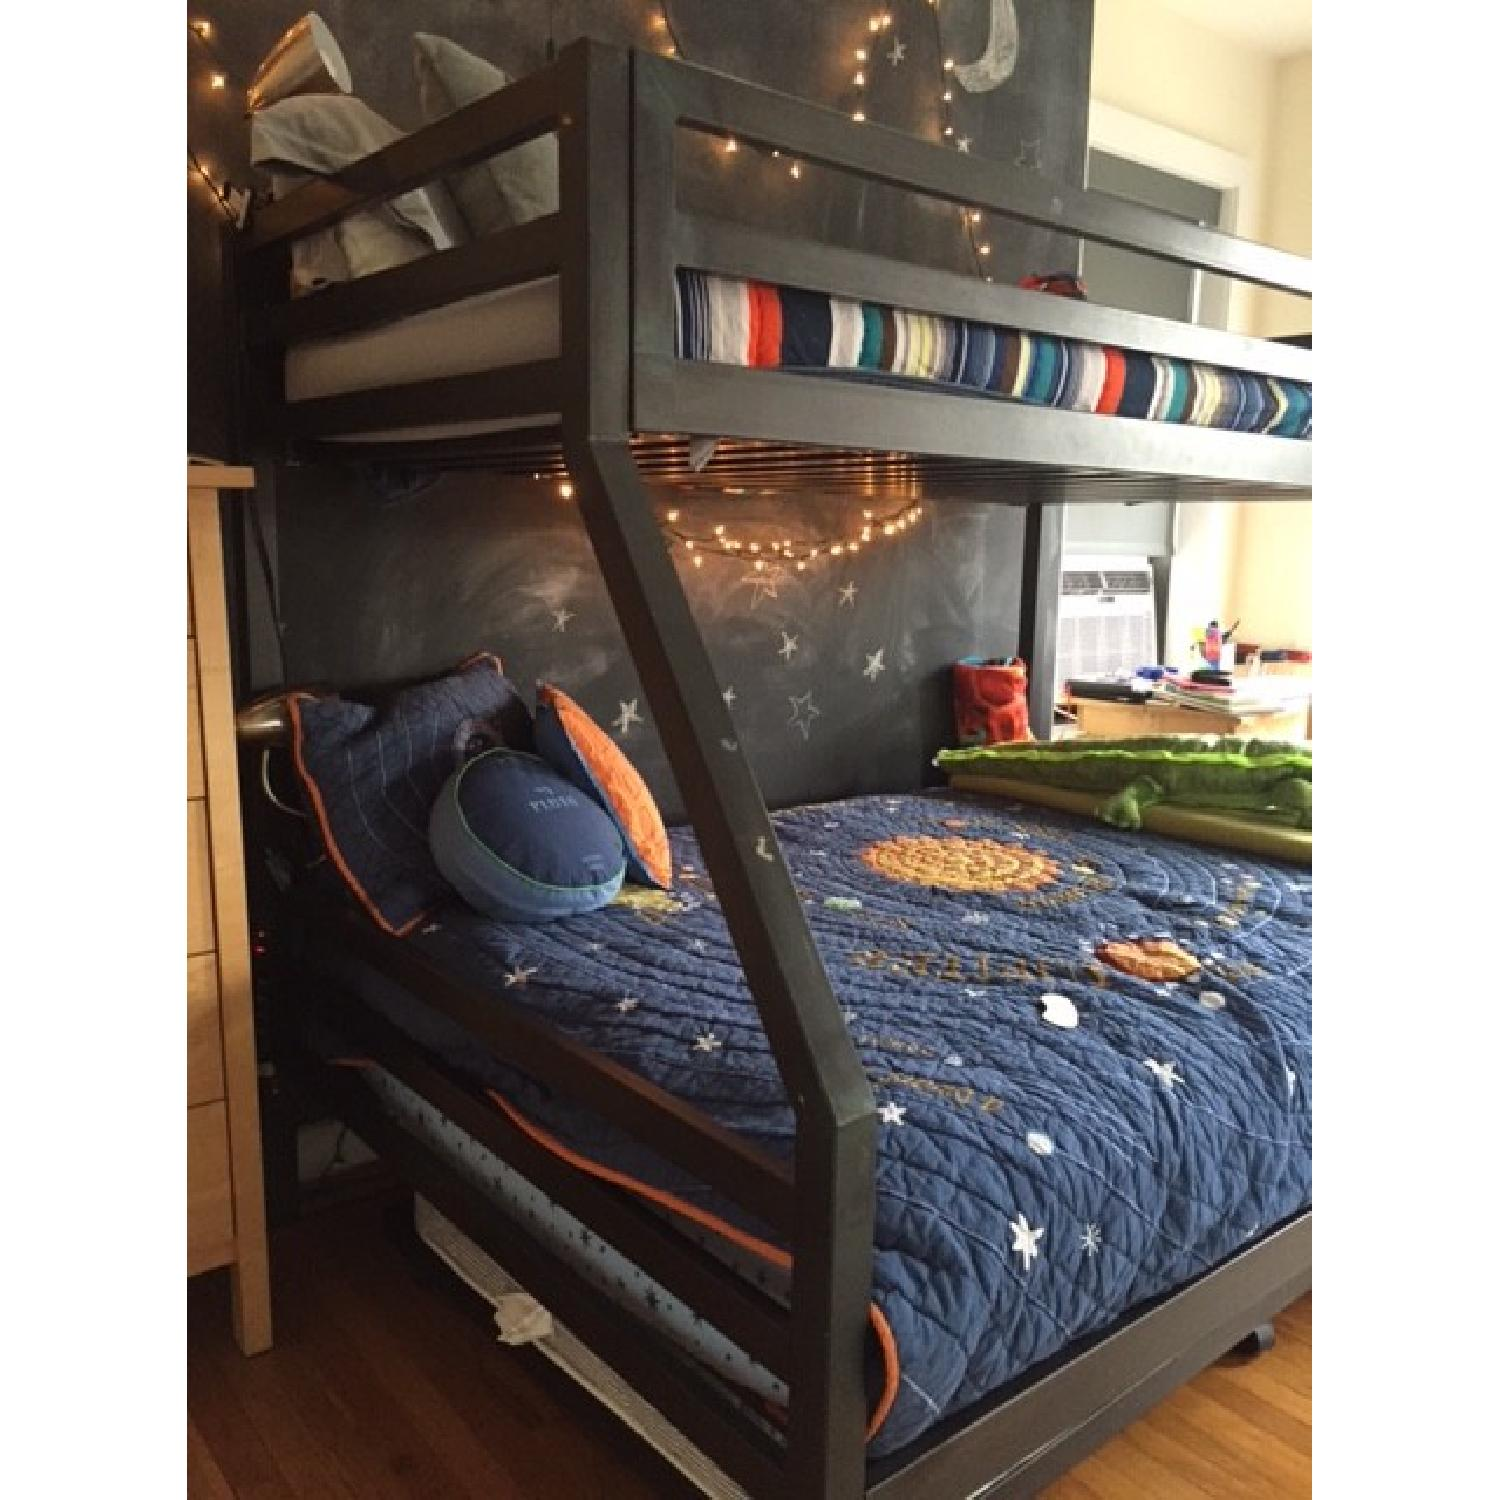 Room & Board Bunk Beds w/ Trundle - image-2